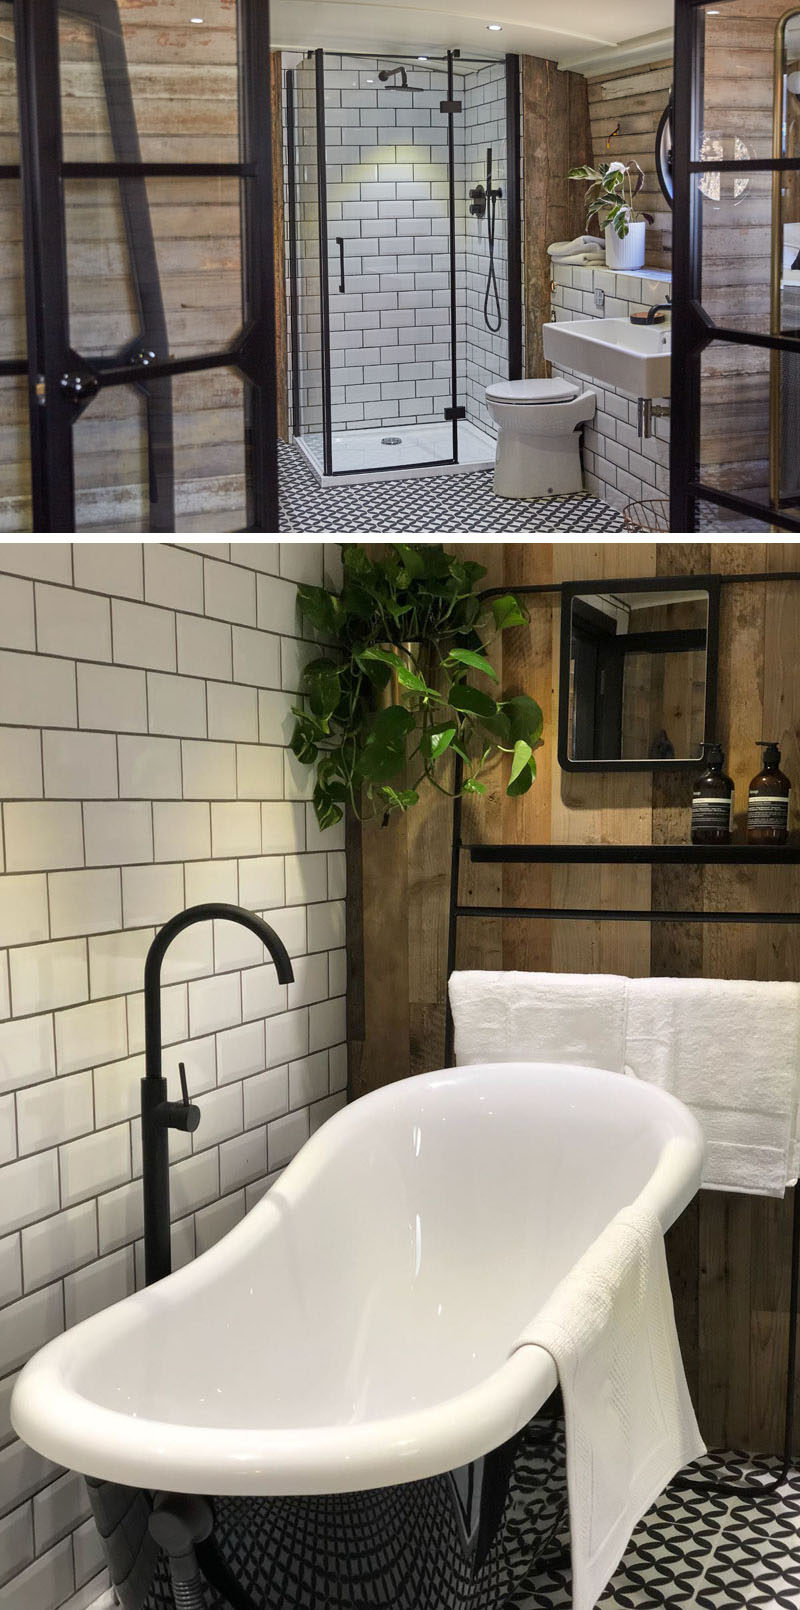 In this bathroom there's patterned tiles on the floor, a black-framed shower with white subway tiles, and a deep freestanding soaking tub with a black exterior. #ReclaimedWood #ModernBathroom #BlackBathtub #BlackAccents